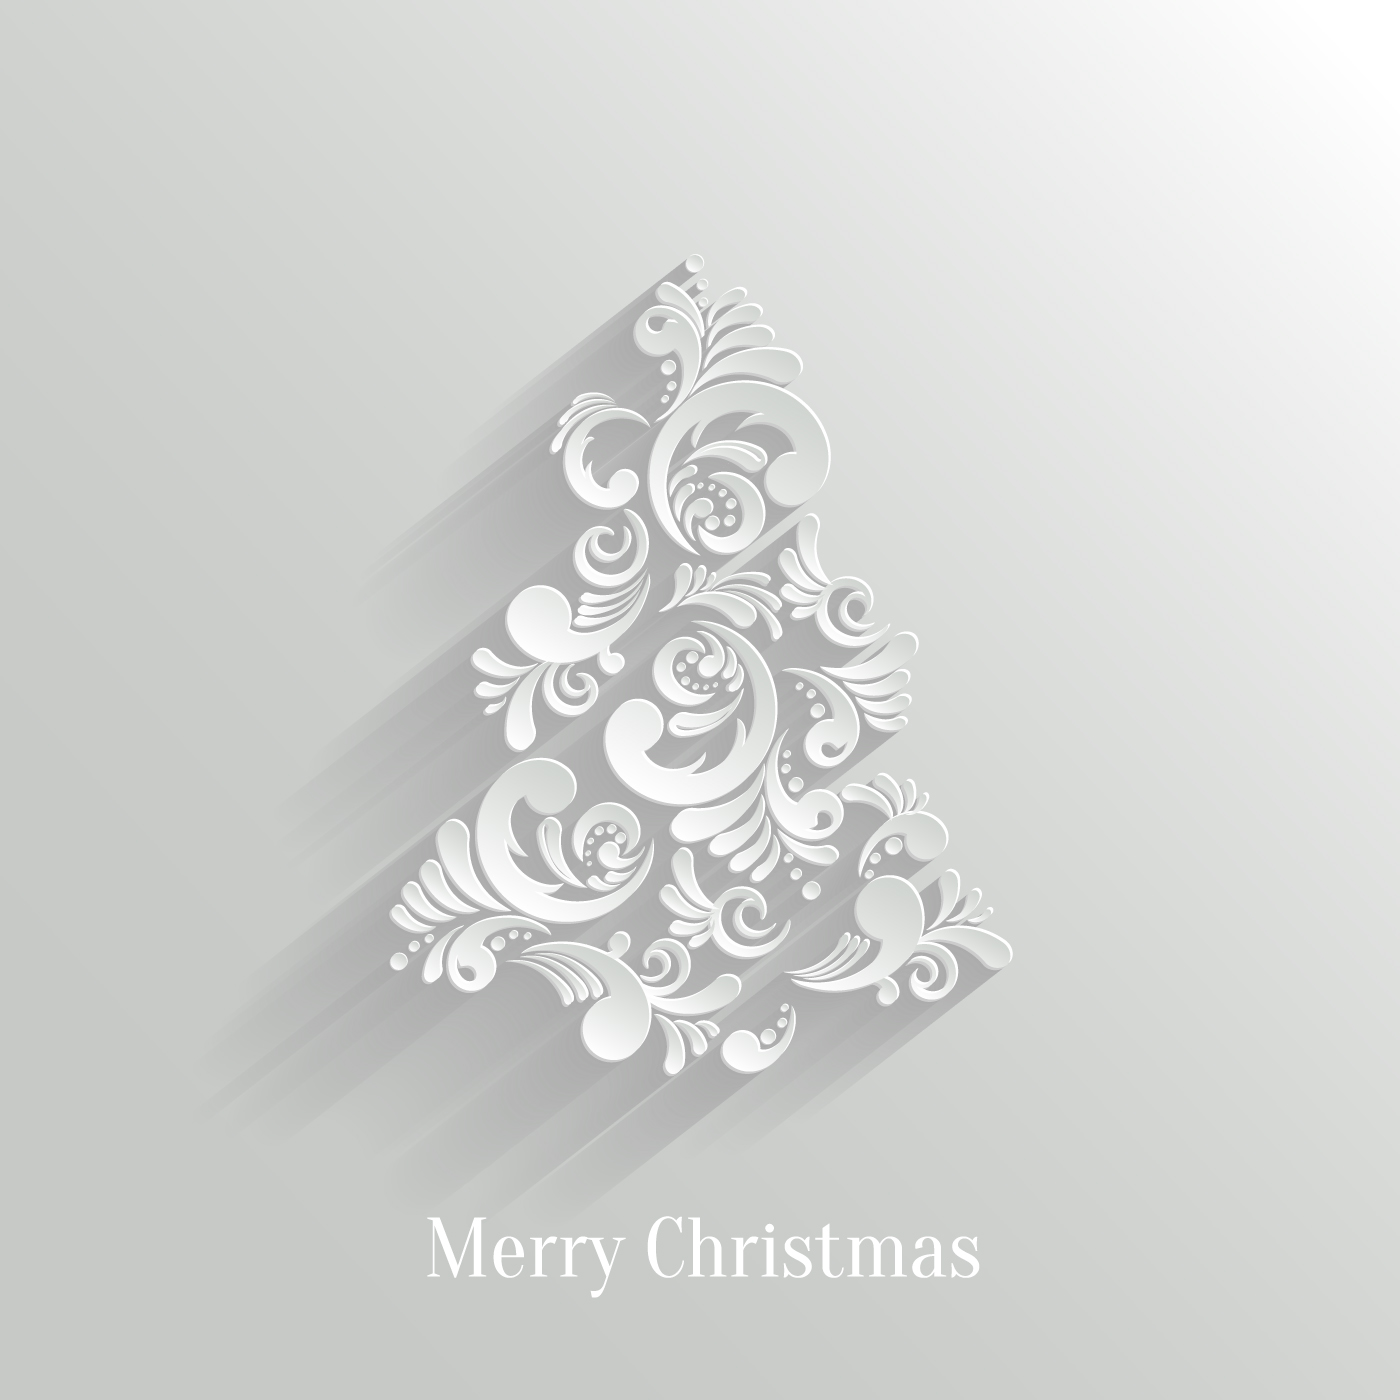 paper floral white christmas backgrounds vector 03